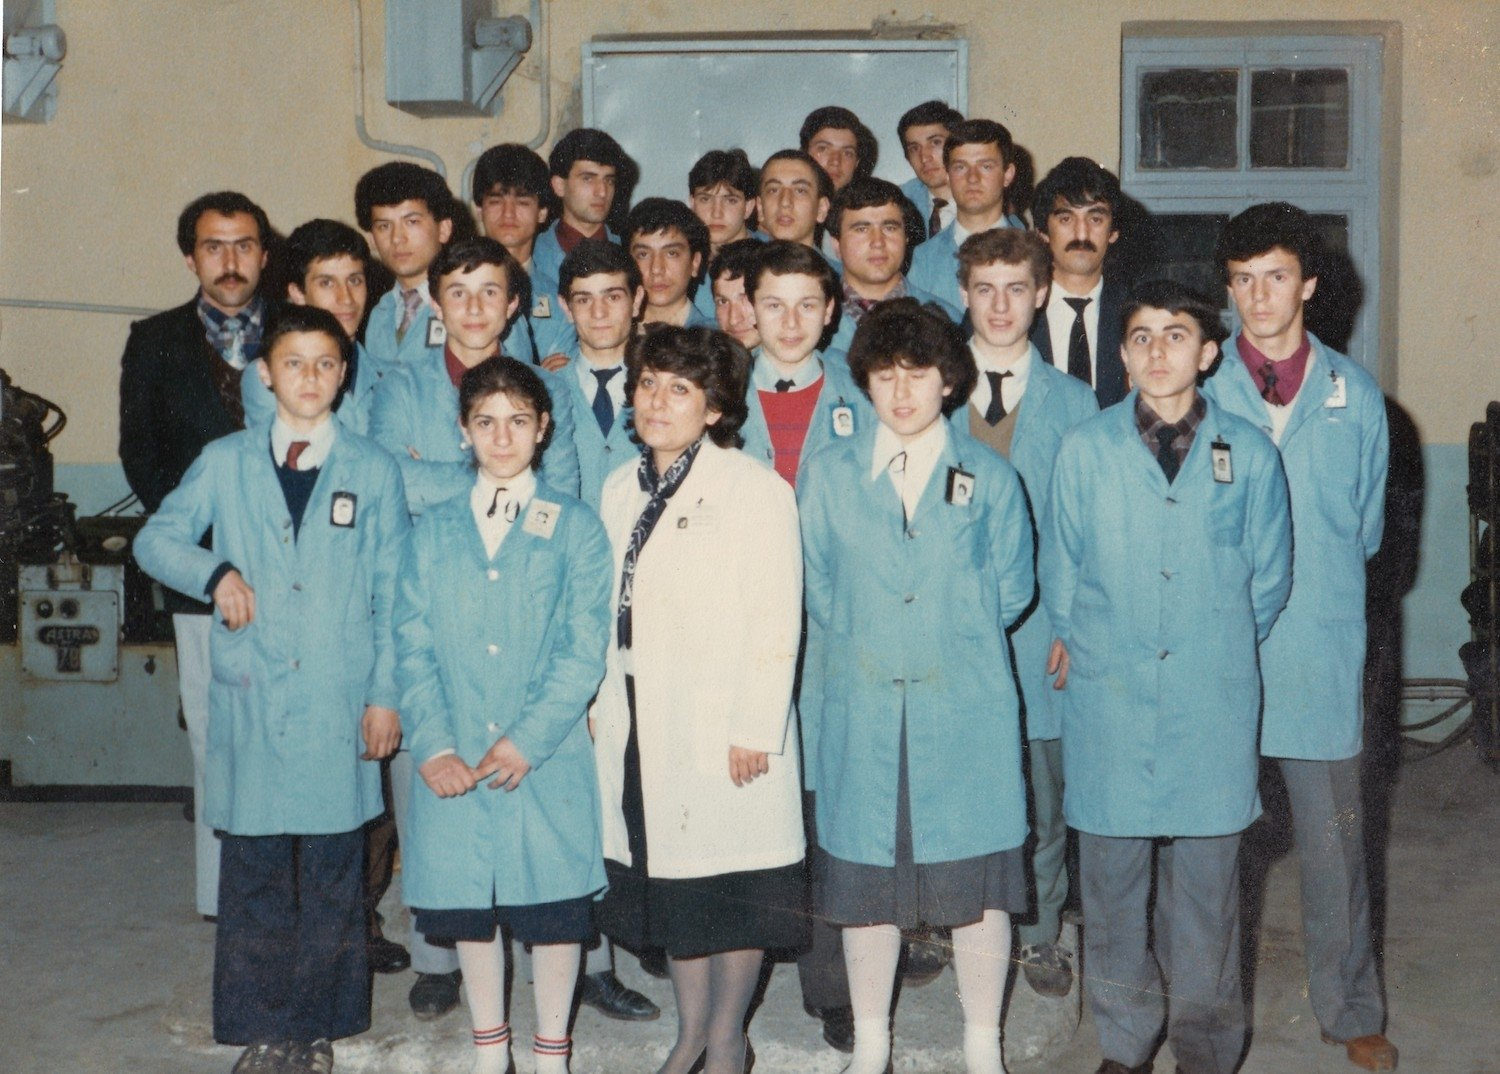 An old photo shows some workers at training in Sümerbank Beykoz Leather and Shoe Factory from 'Kundura Memory' exhibition.